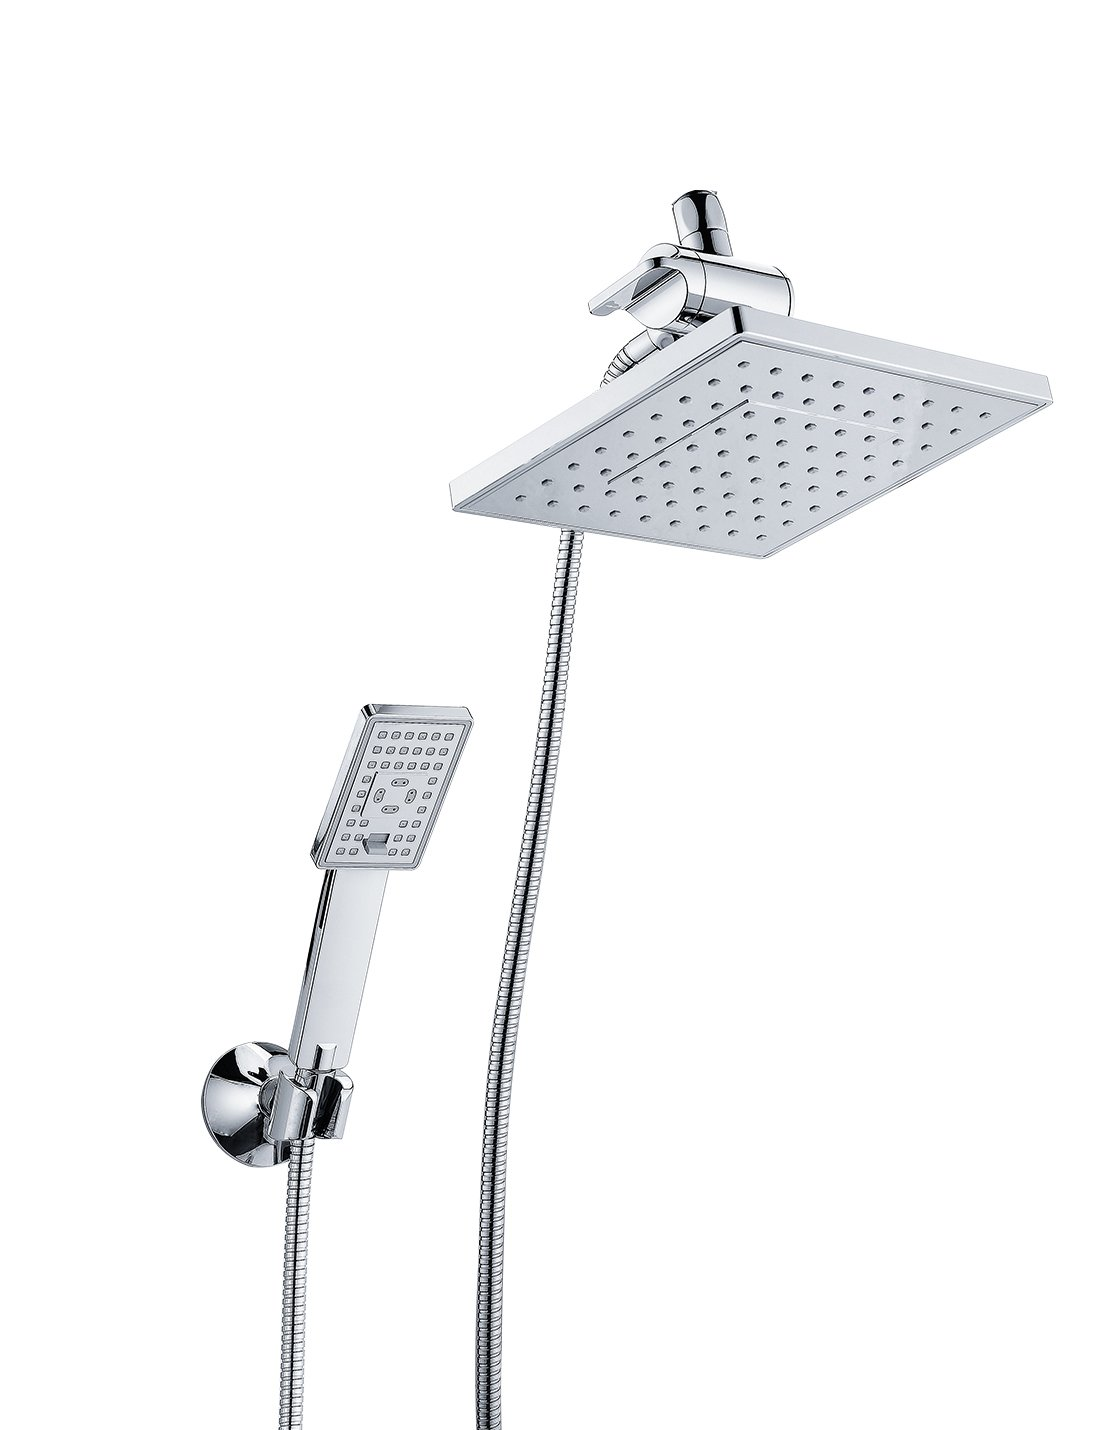 Bright Showers - Handheld Shower Head and Overhead Rain Shower Combo Set - Includes Wall Suction Bracket, 3-Way Diverter Mount and 5 ft. Stainless Steel Hose – Chrome Finish